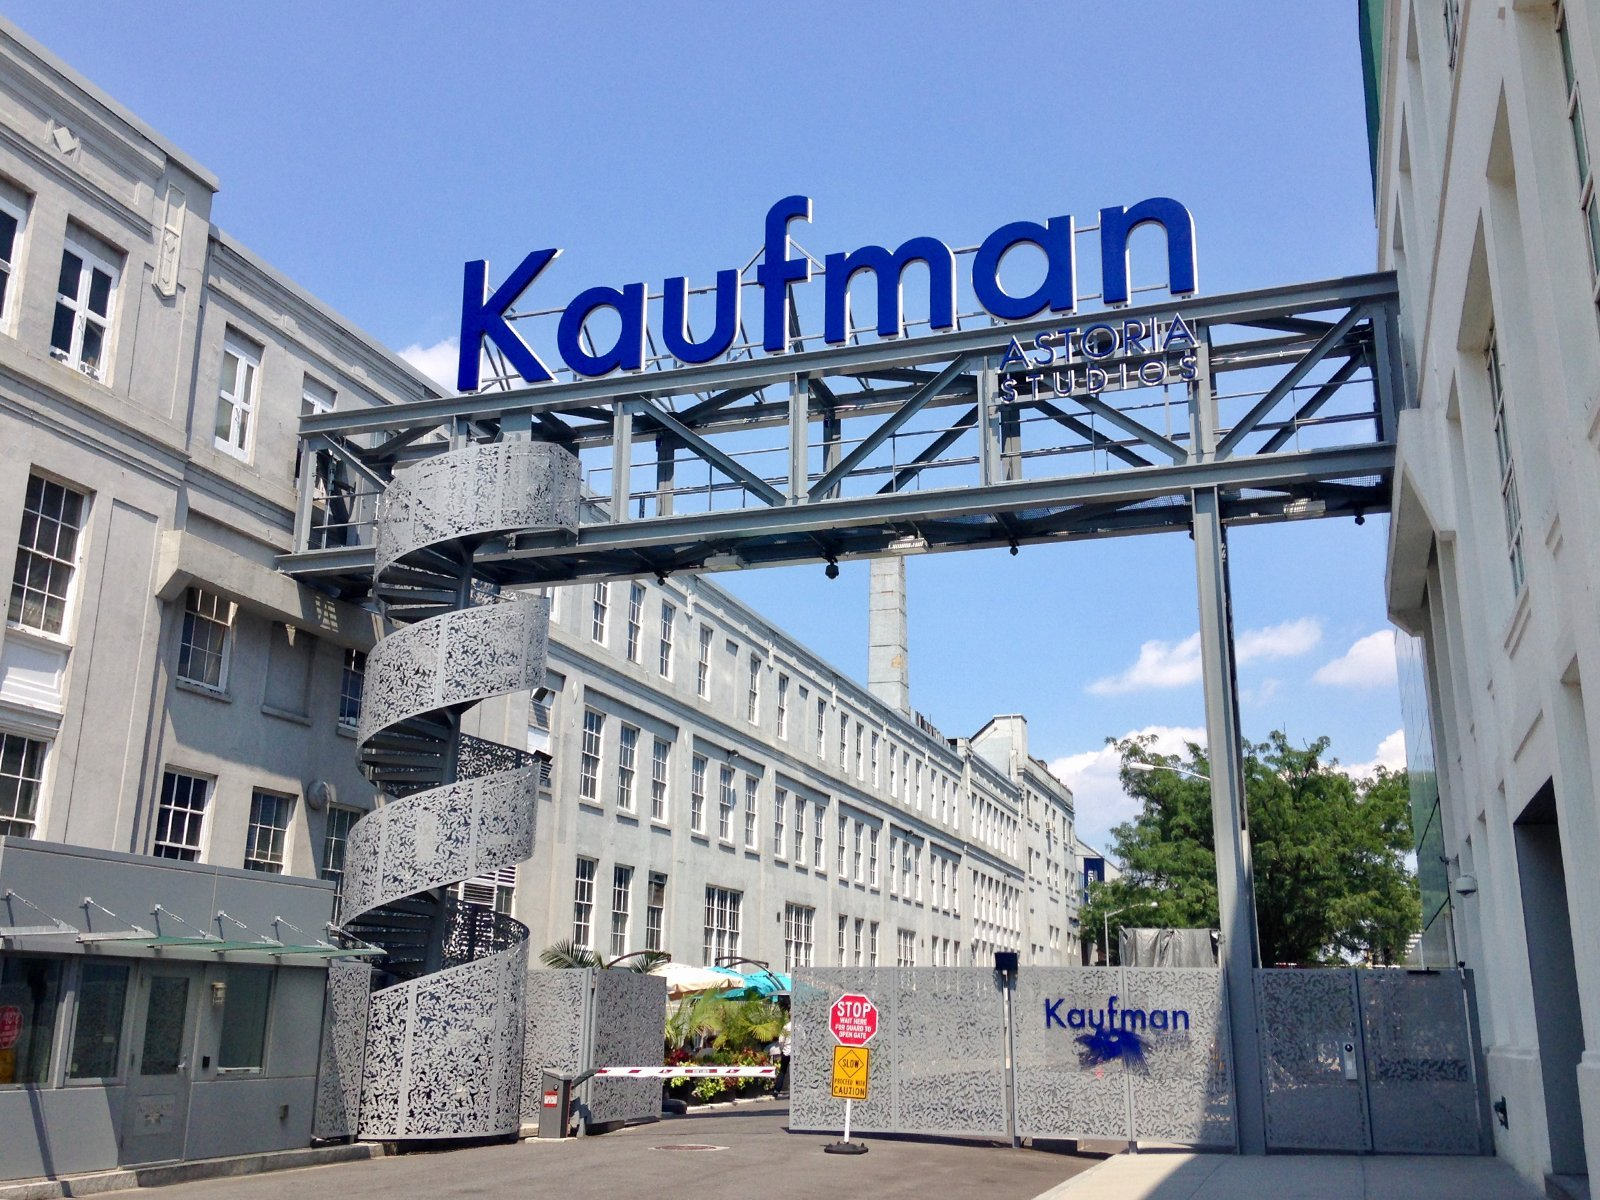 Kaufman Studios in Astoria, Queens, New York